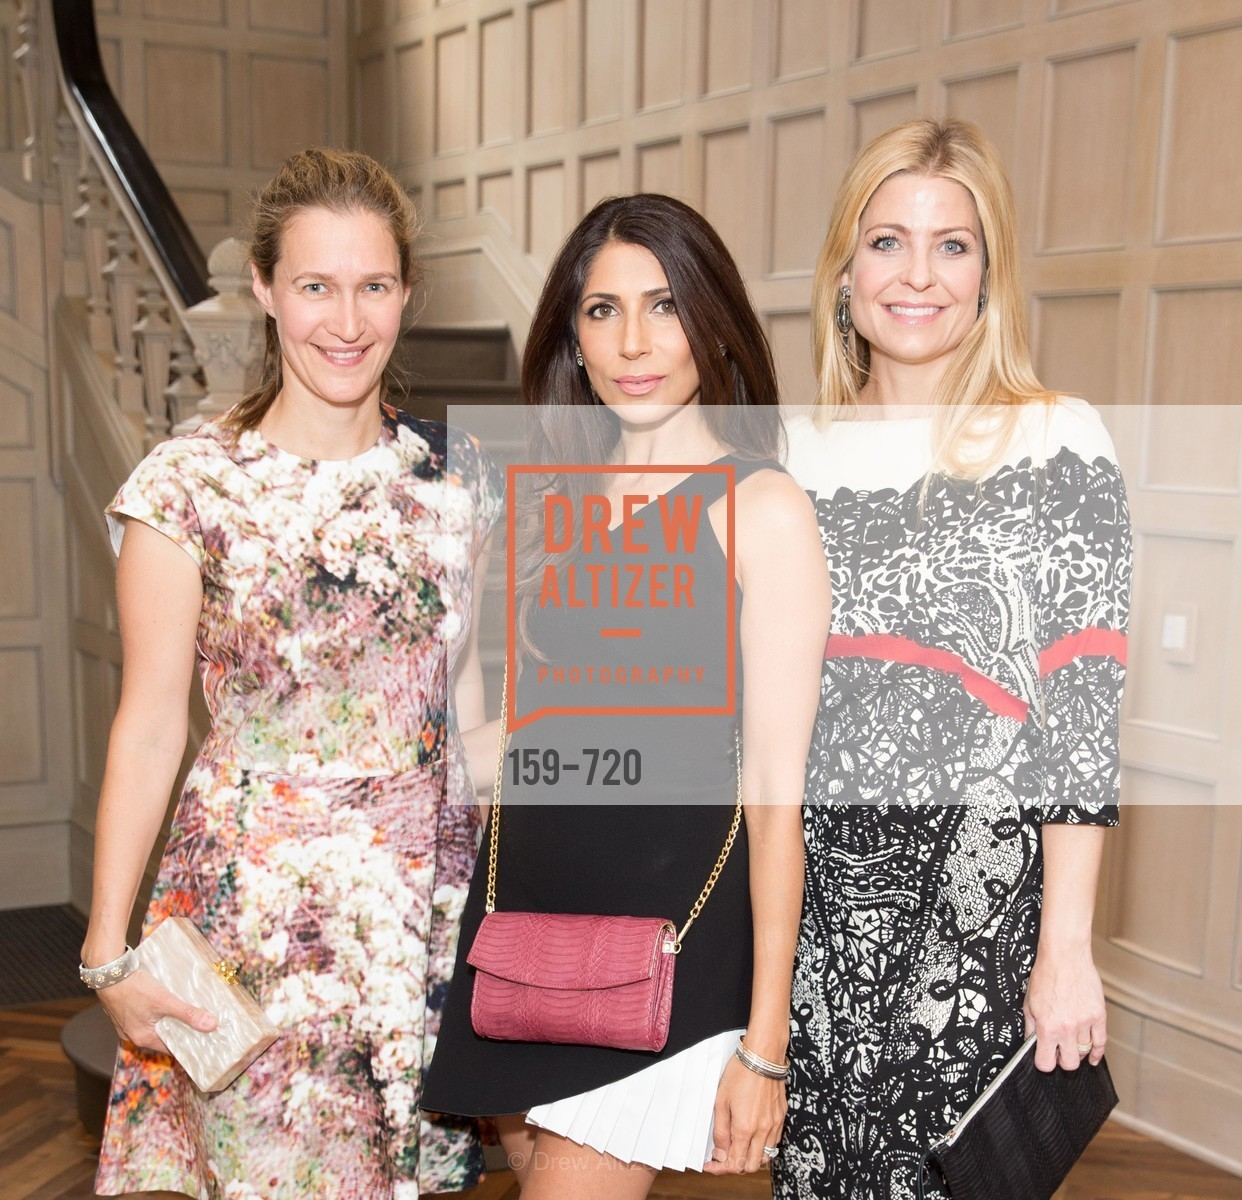 Nina Stanford, Sobia Shaikh, Jenna Hunt, C MAGAZINE Editors Cocktail Party, US, May 12th, 2015,Drew Altizer, Drew Altizer Photography, full-service agency, private events, San Francisco photographer, photographer california